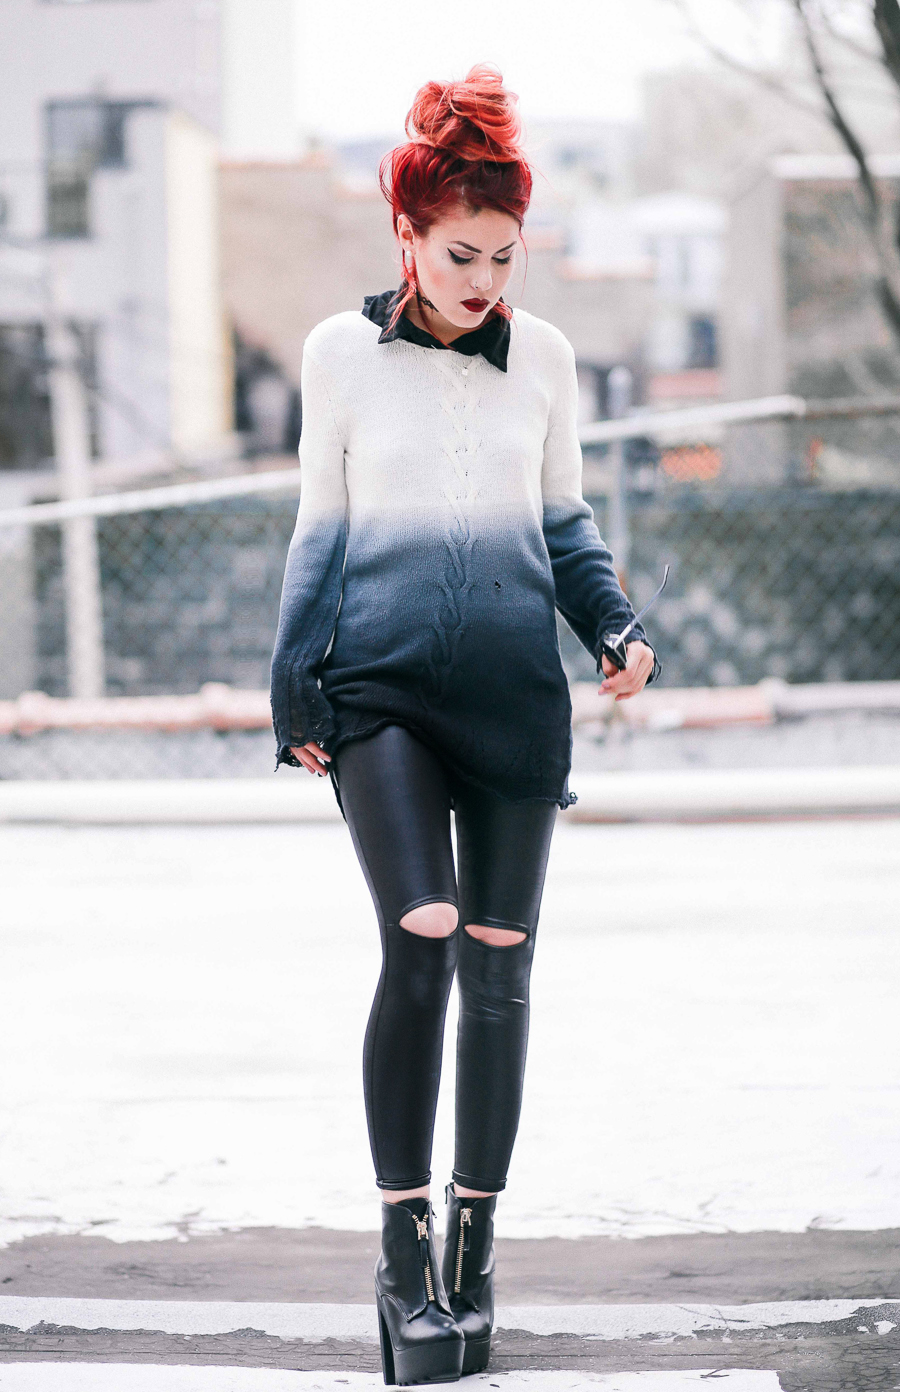 Le Happy wearing ombre sweater and leather leggings